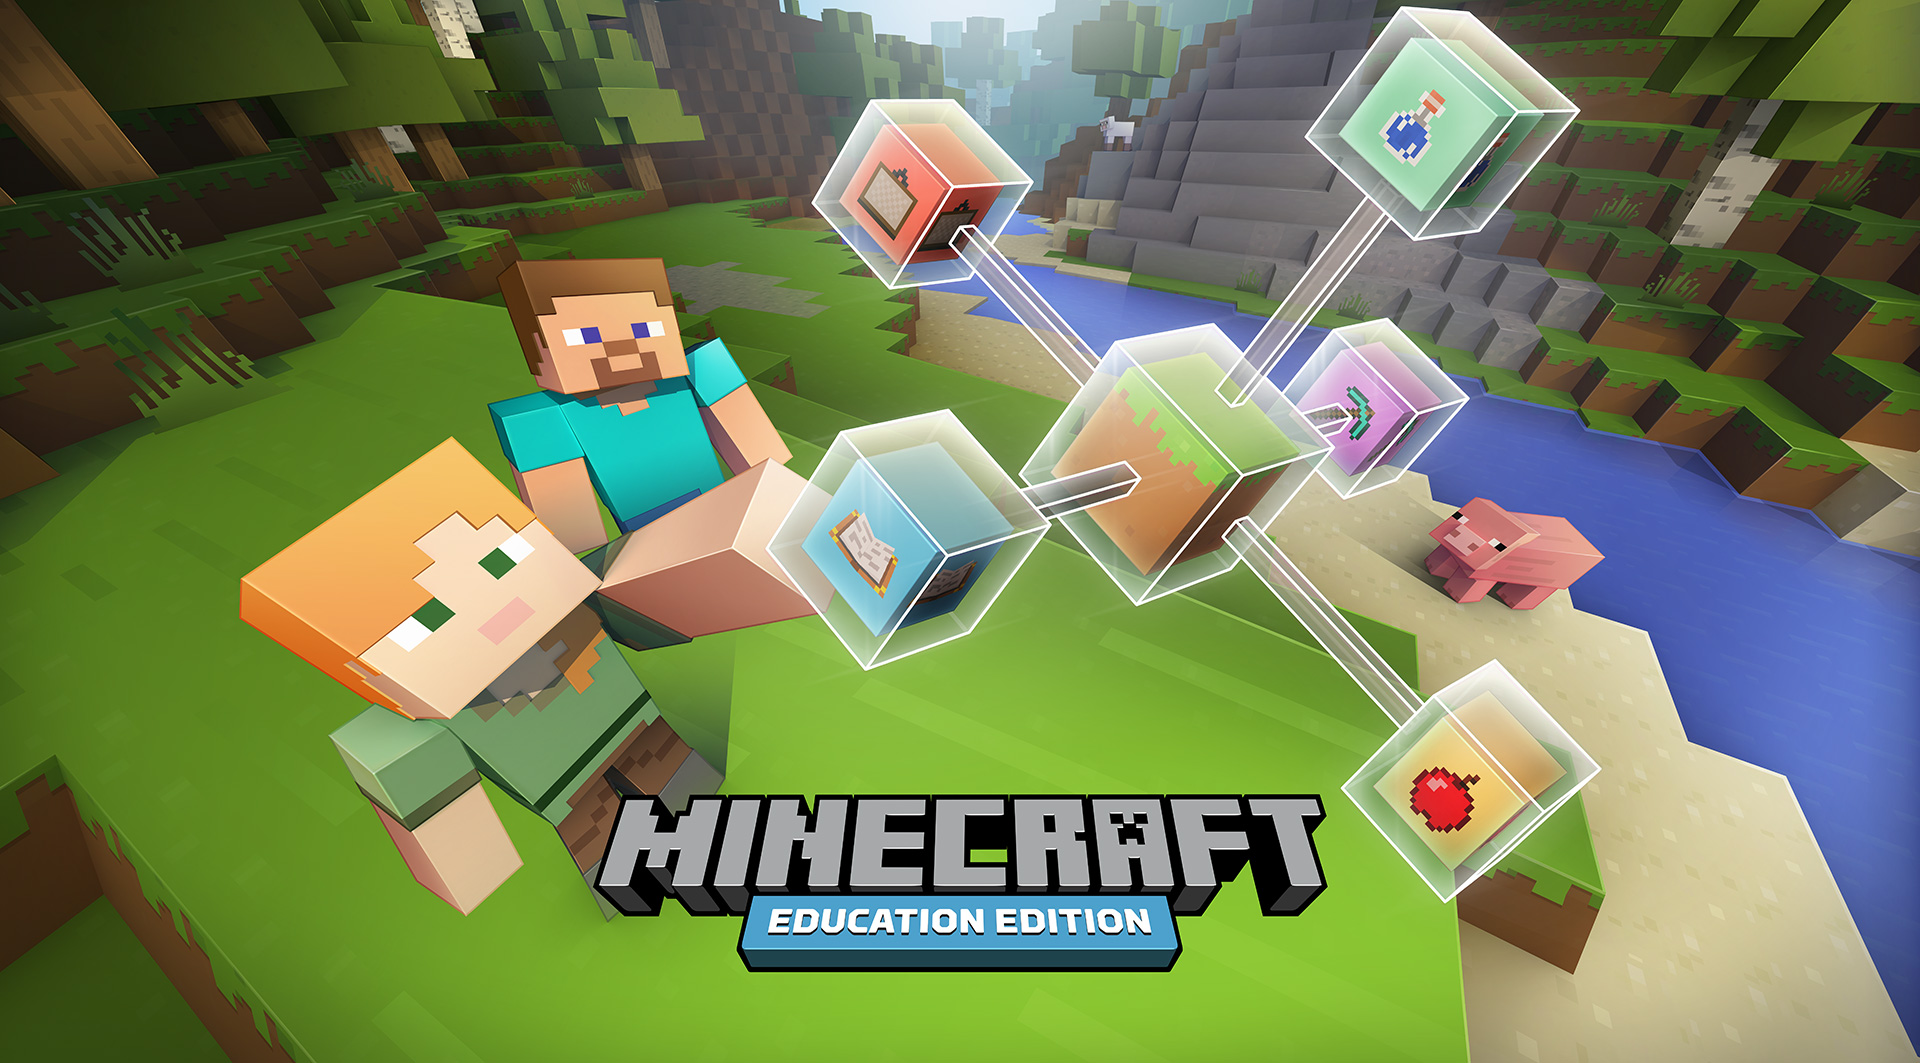 Microsoft launches 'Minecraft: Education Edition' priced at $5 per user, per year